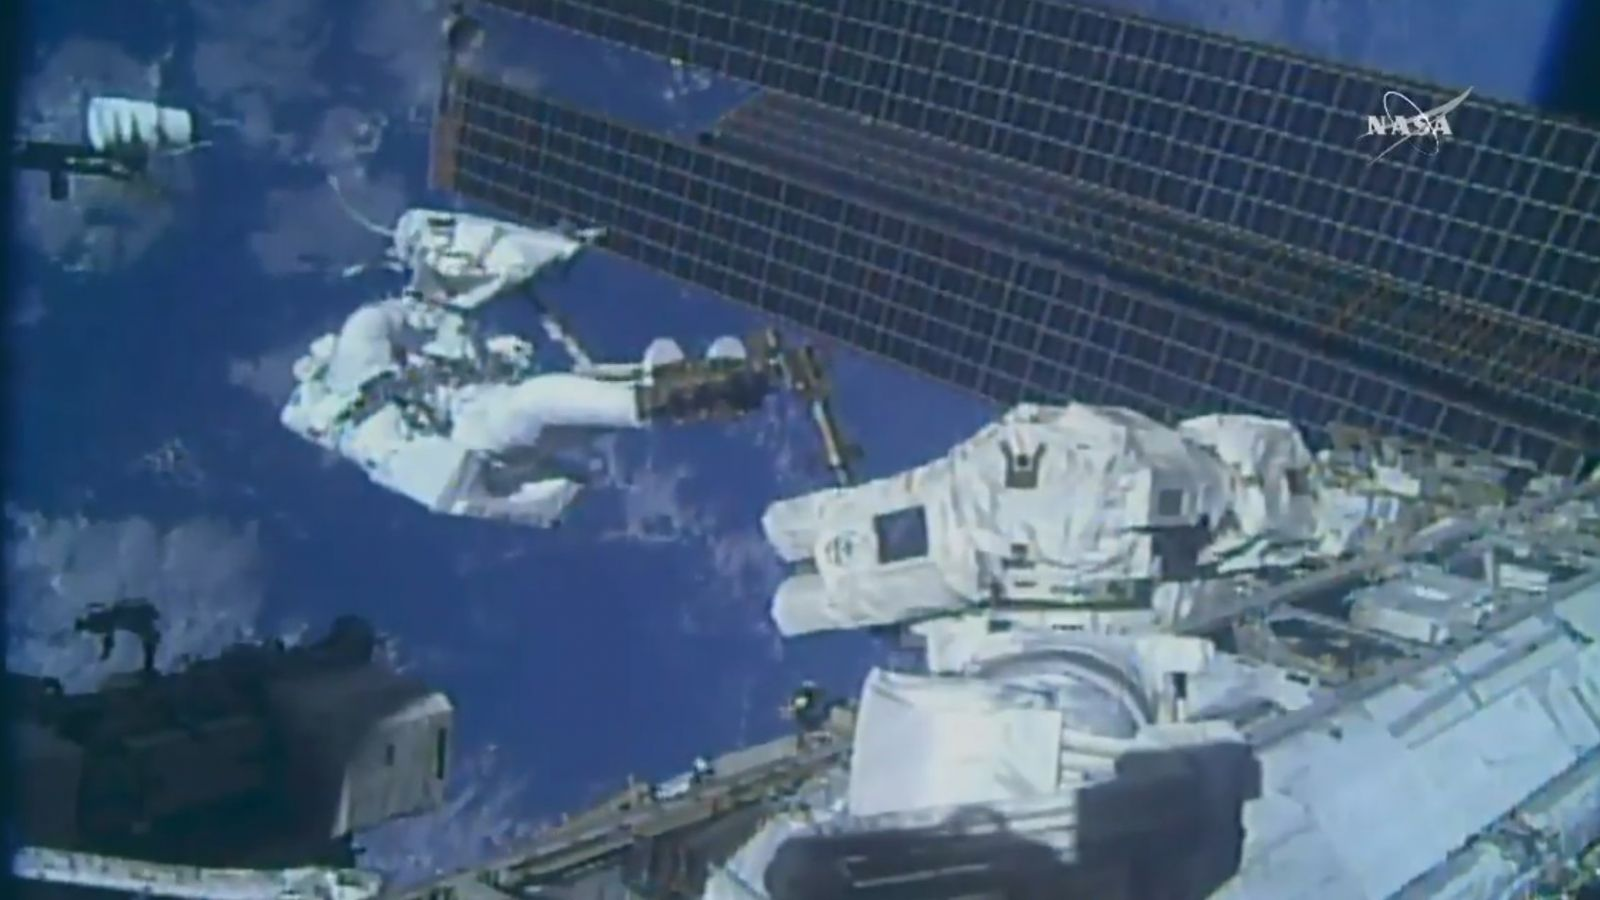 NASA astronaut Ricky Arnold at the end of the robotic Canadarm2 during U.S. EVA-50. Photo Credit: NASA TV